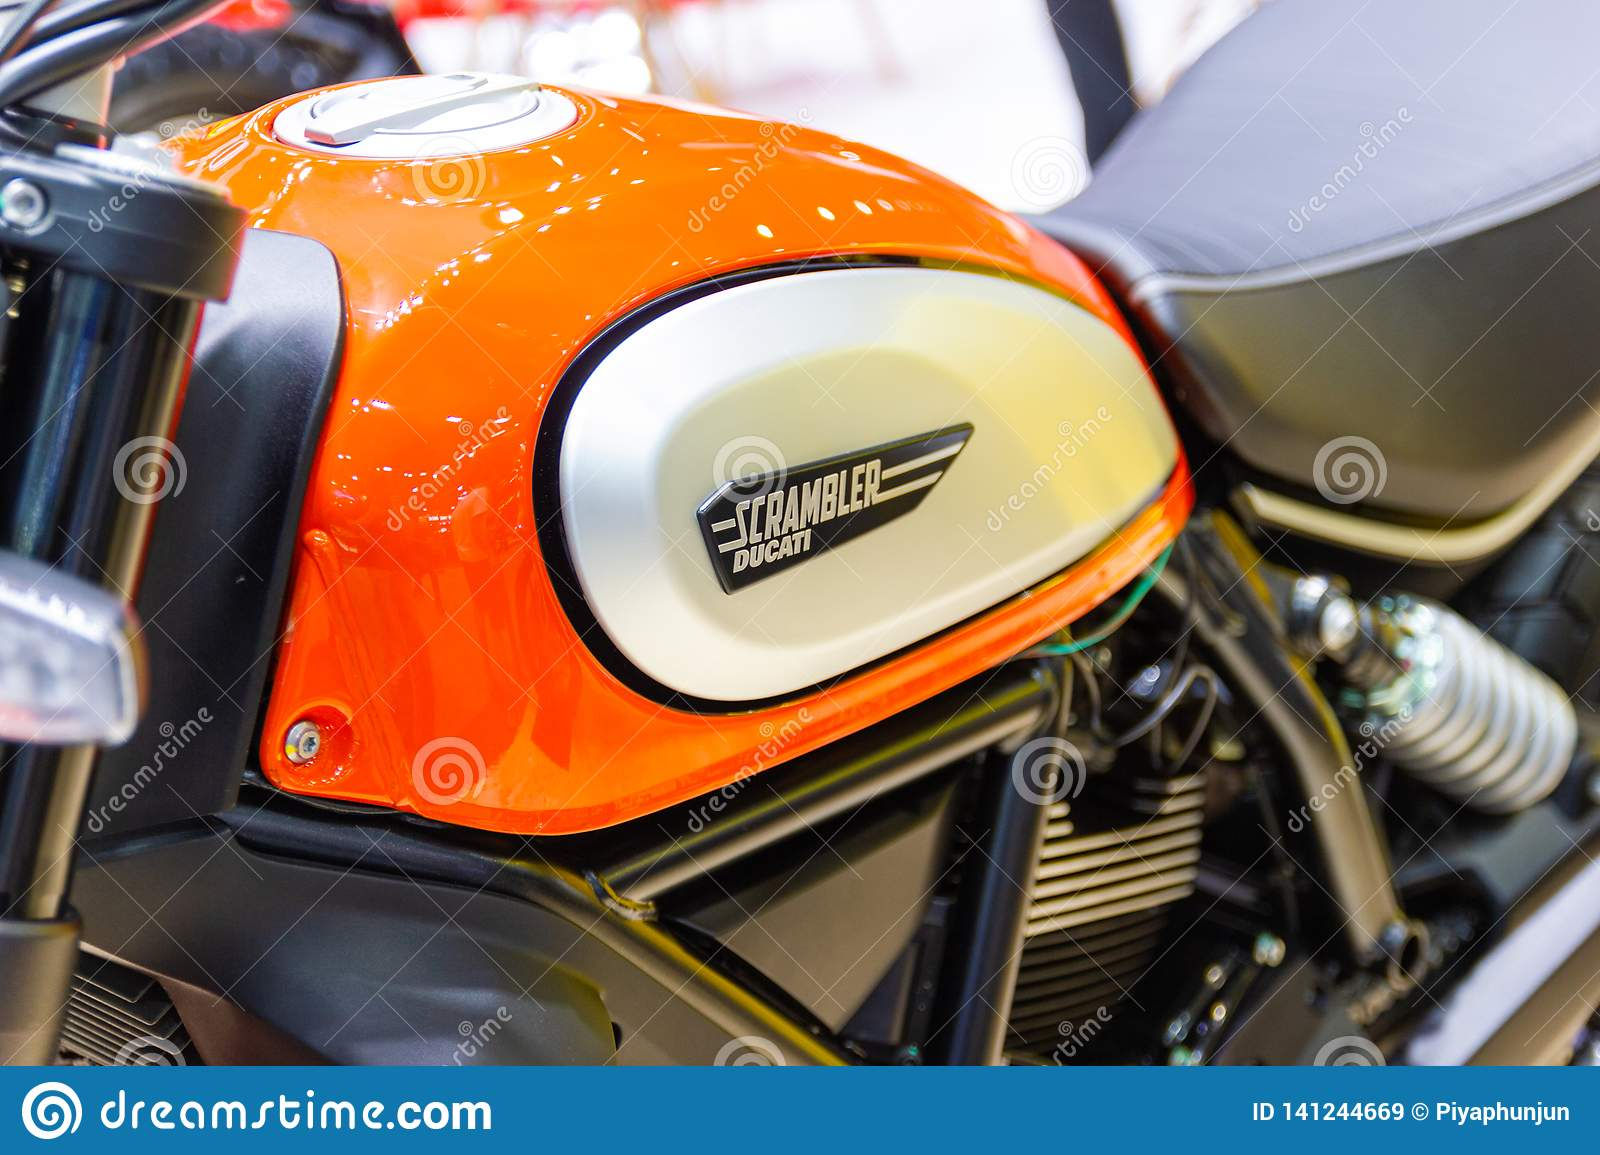 Closeup Logo Ducati Scrambler Motorcycle Ducati Monster At